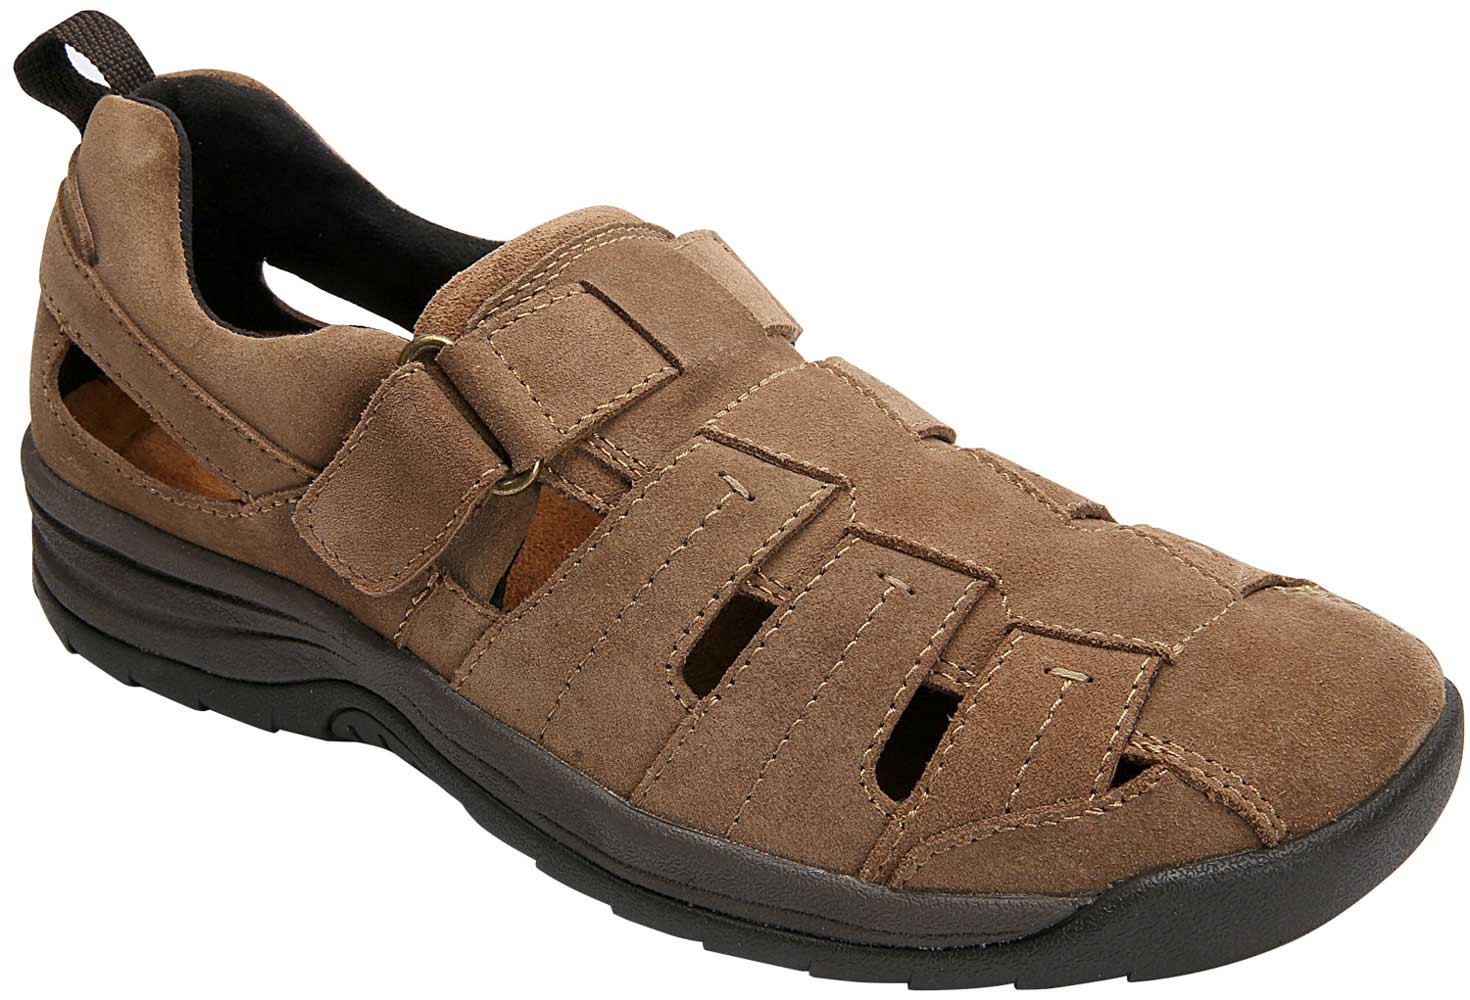 Drew Shoes Dublin 47717 - Men's Comfort Therapeutic Shoe with Removable Inserts - Sandals - Medium (D) - Extra Wide (6E) - Extra Depth for Orthotics